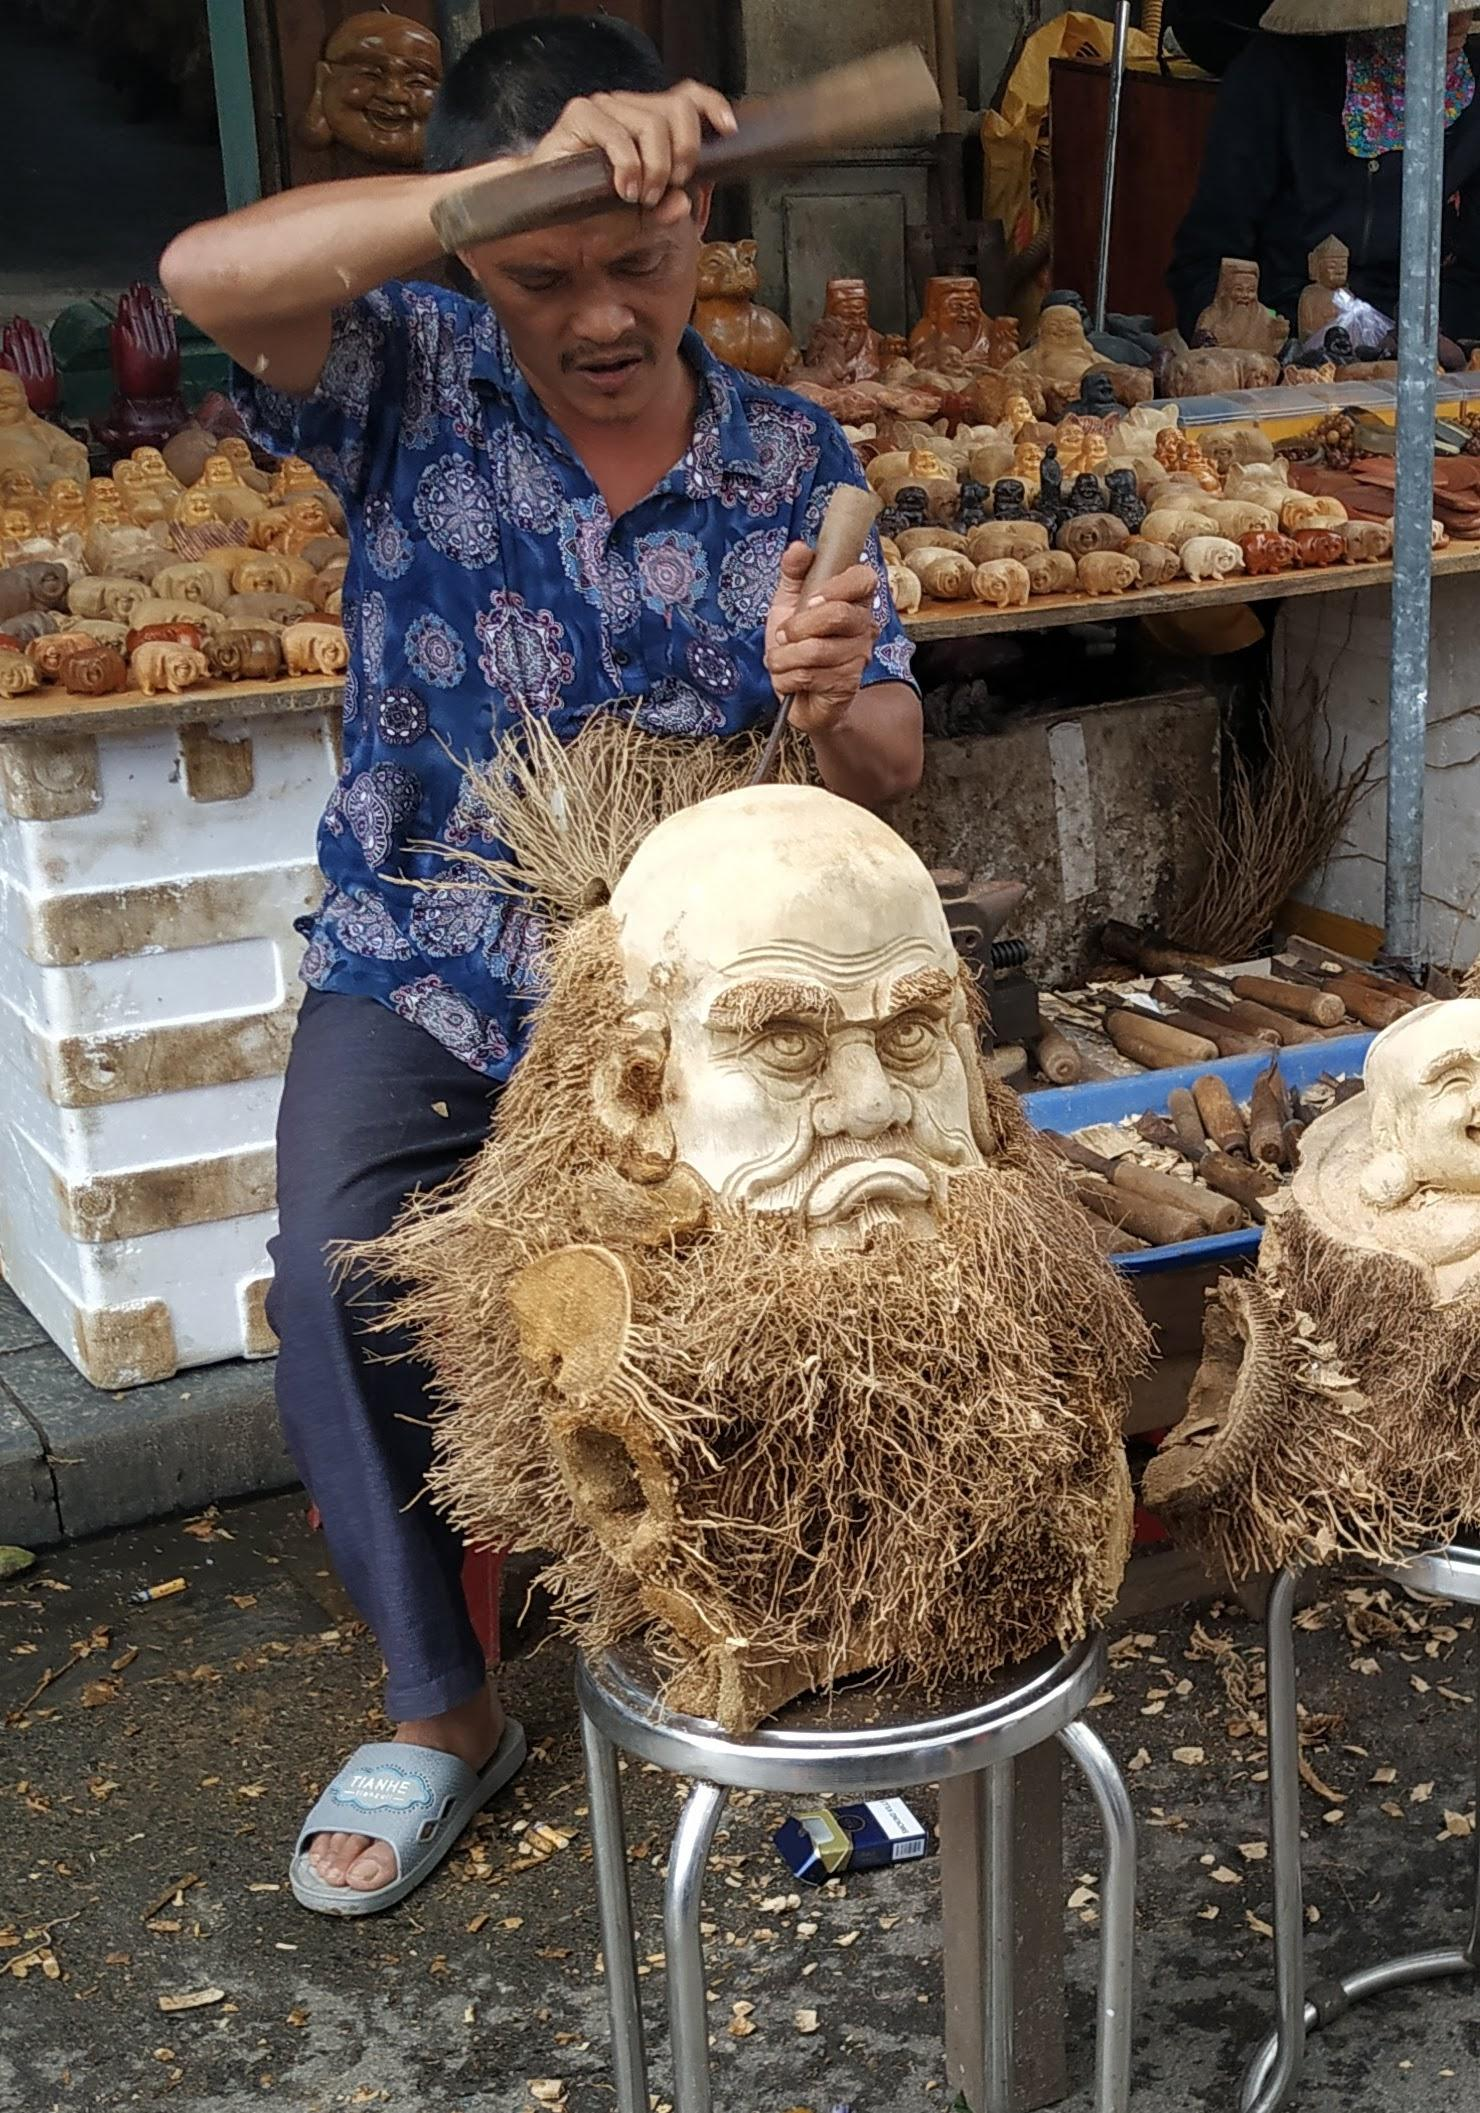 Sculpture made from a tree stump using the roots as facial hair